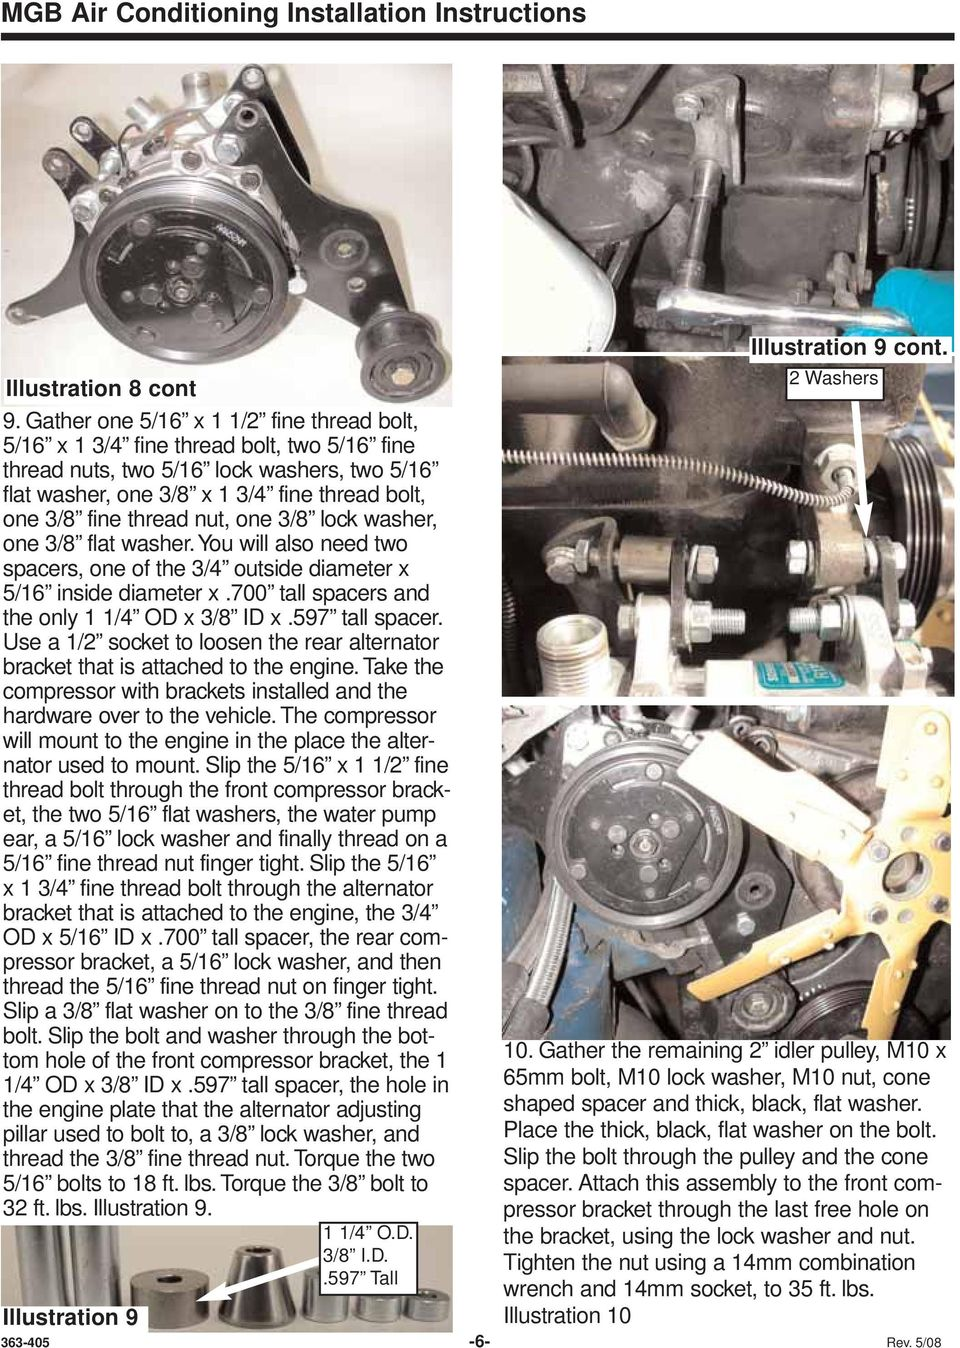 Mgb Air Conditioning Installation Instructions For Lhd Cars W Detailed A C Compressor Bracketry Diagram Nut One 3 8 Lock Washer Flat